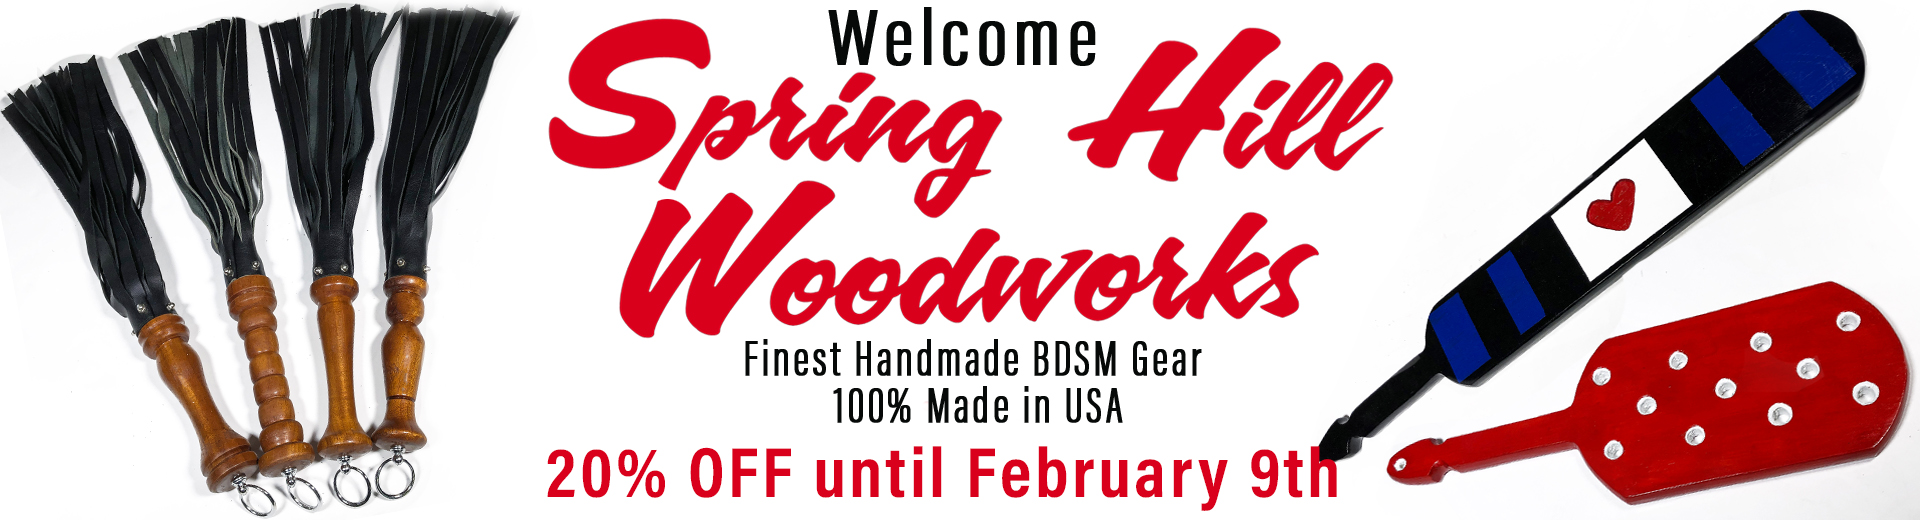 20% off spring hill wood works